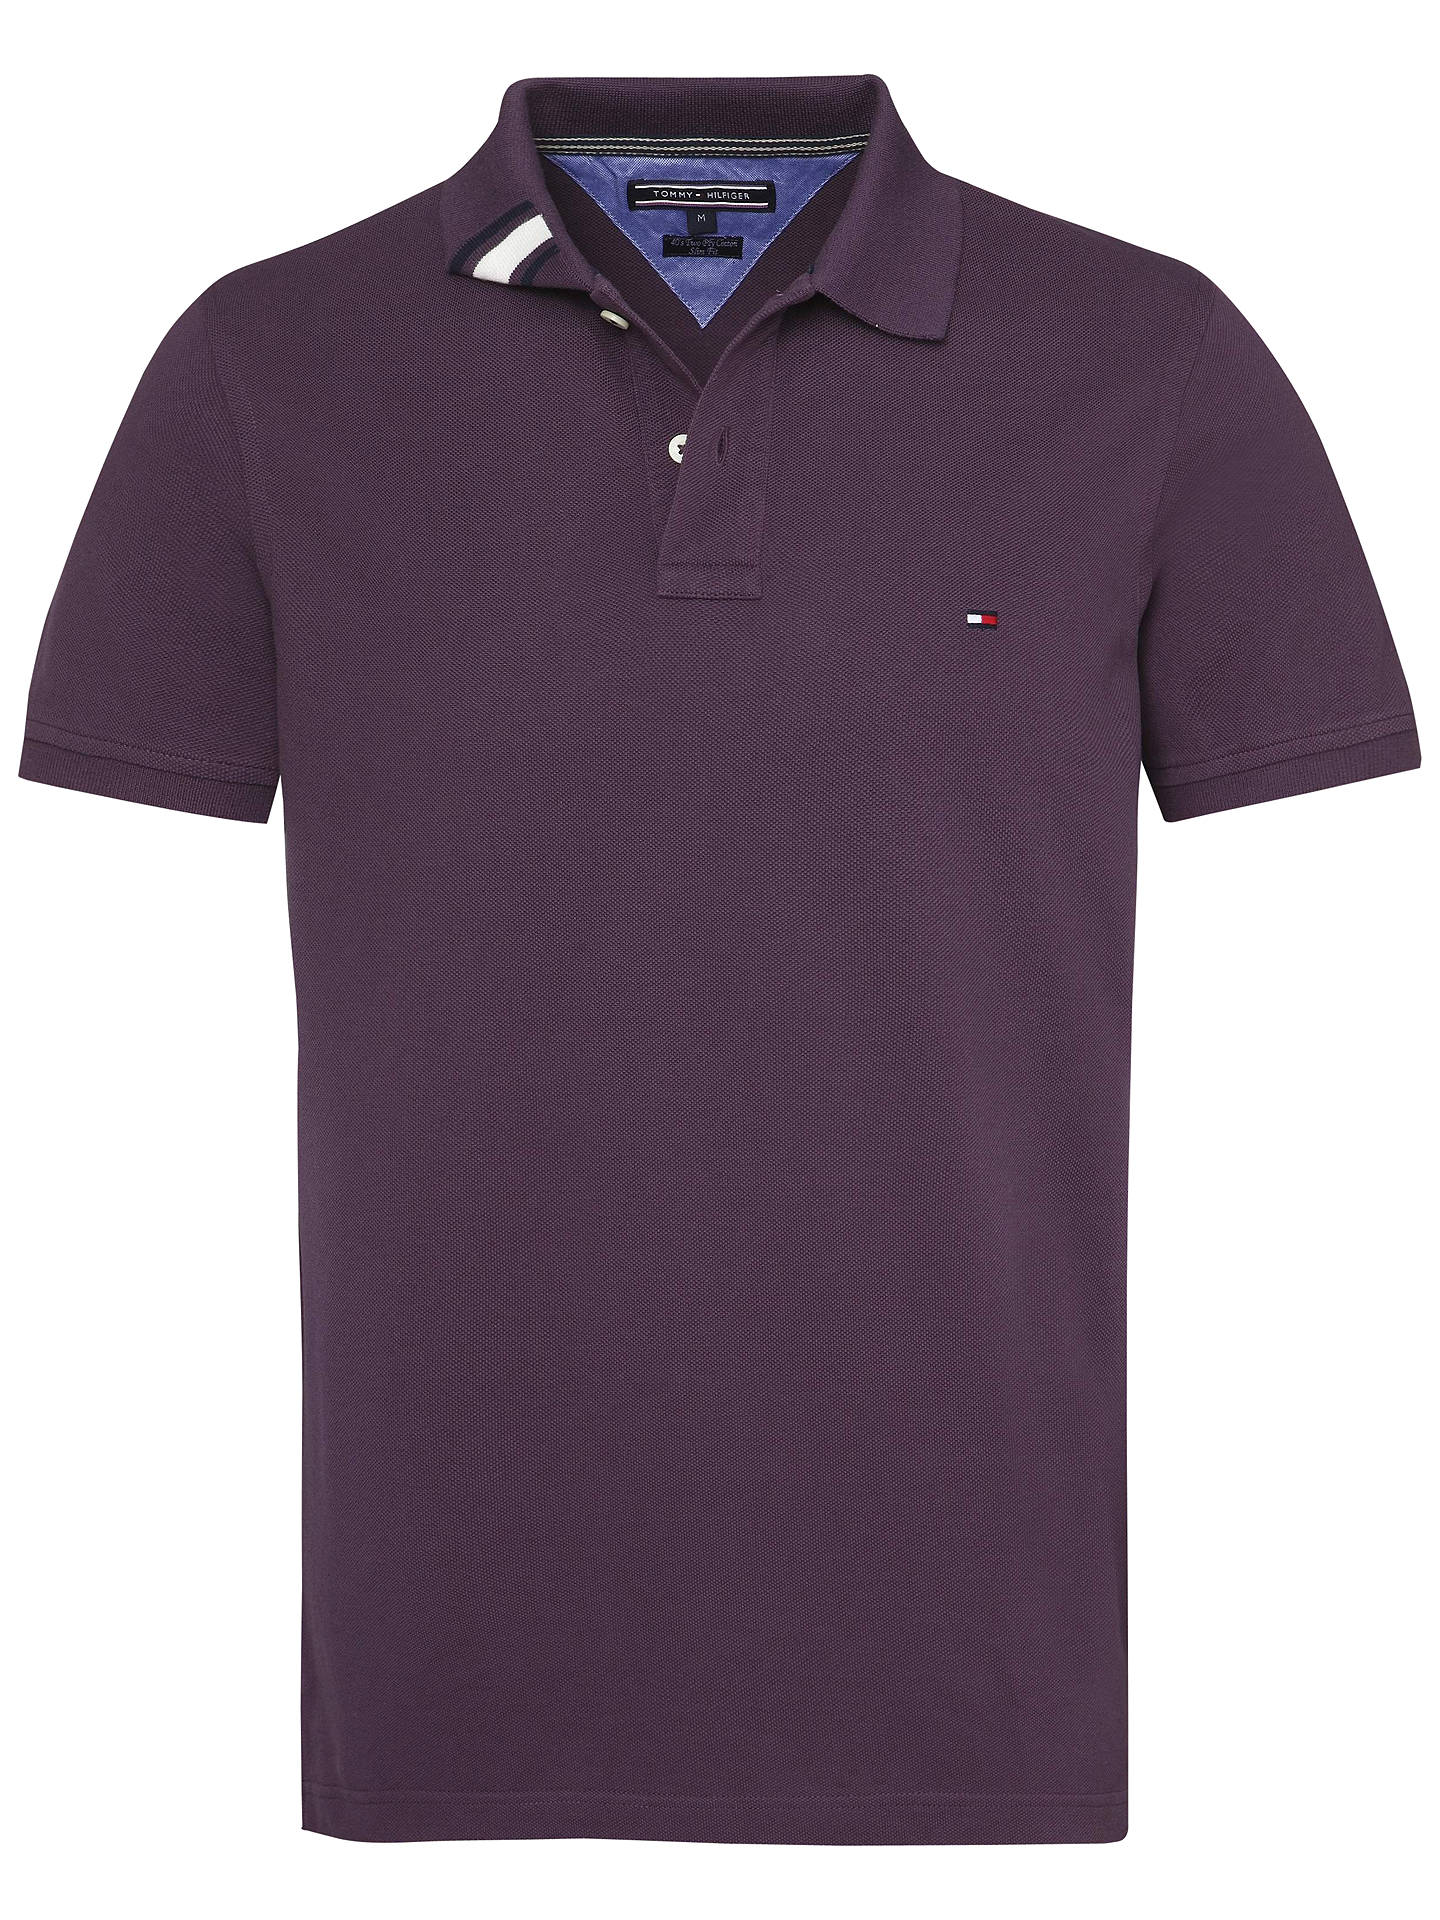 a0db562cf Buy Tommy Hilfiger Slim Fit Polo Shirt, Navy, S Online at johnlewis.com ...